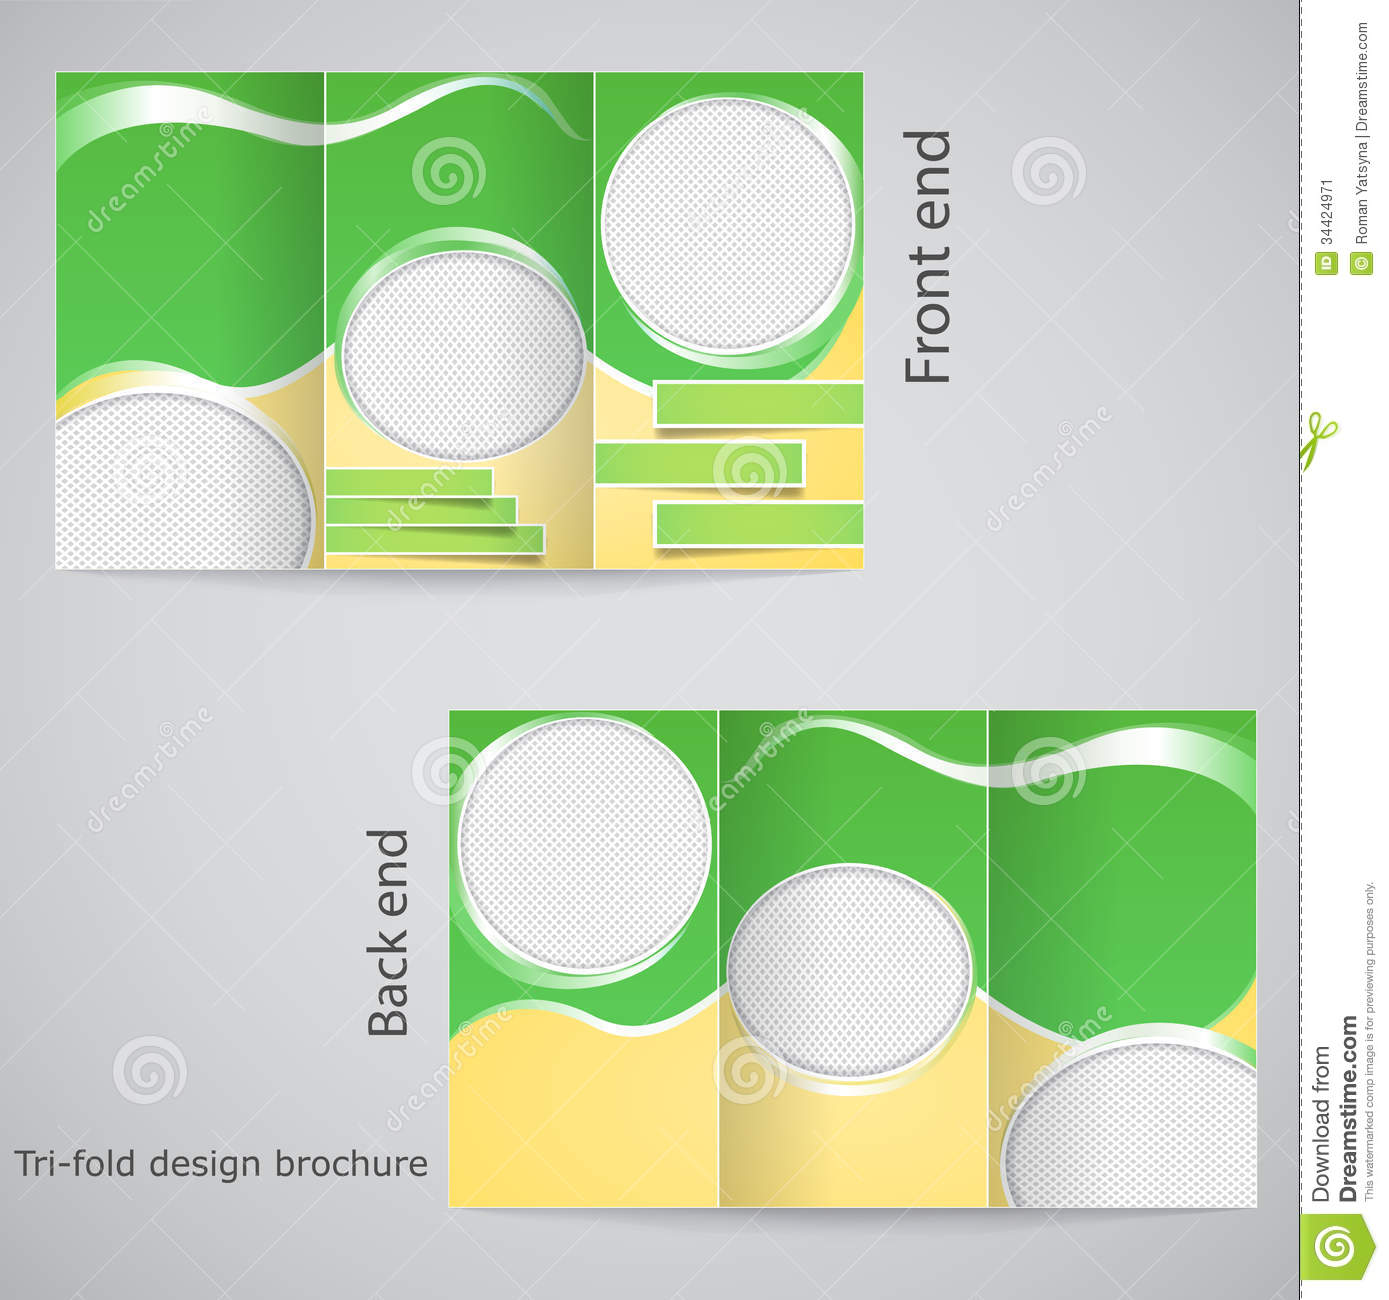 Tri fold brochure design stock vector illustration of for Free templates for brochures tri fold